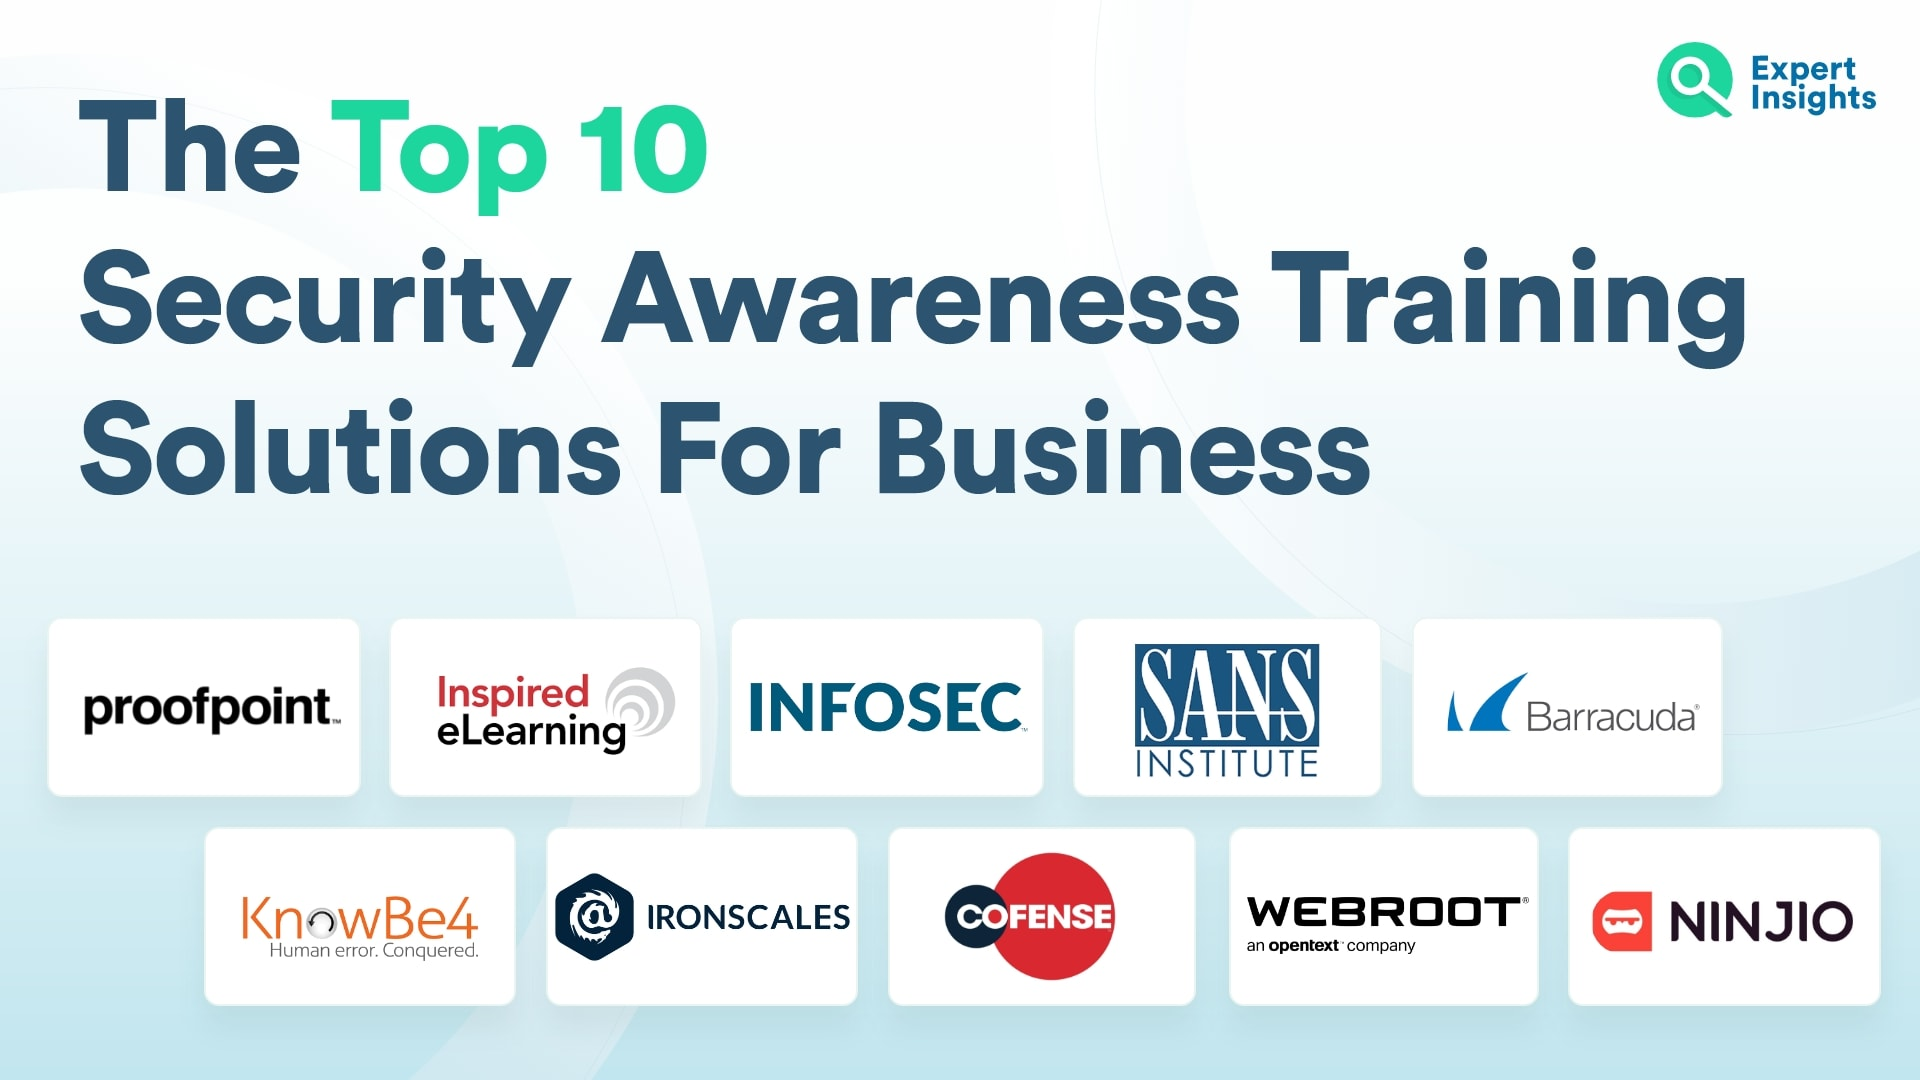 Top Security Awareness Training For Business - Expert Insights